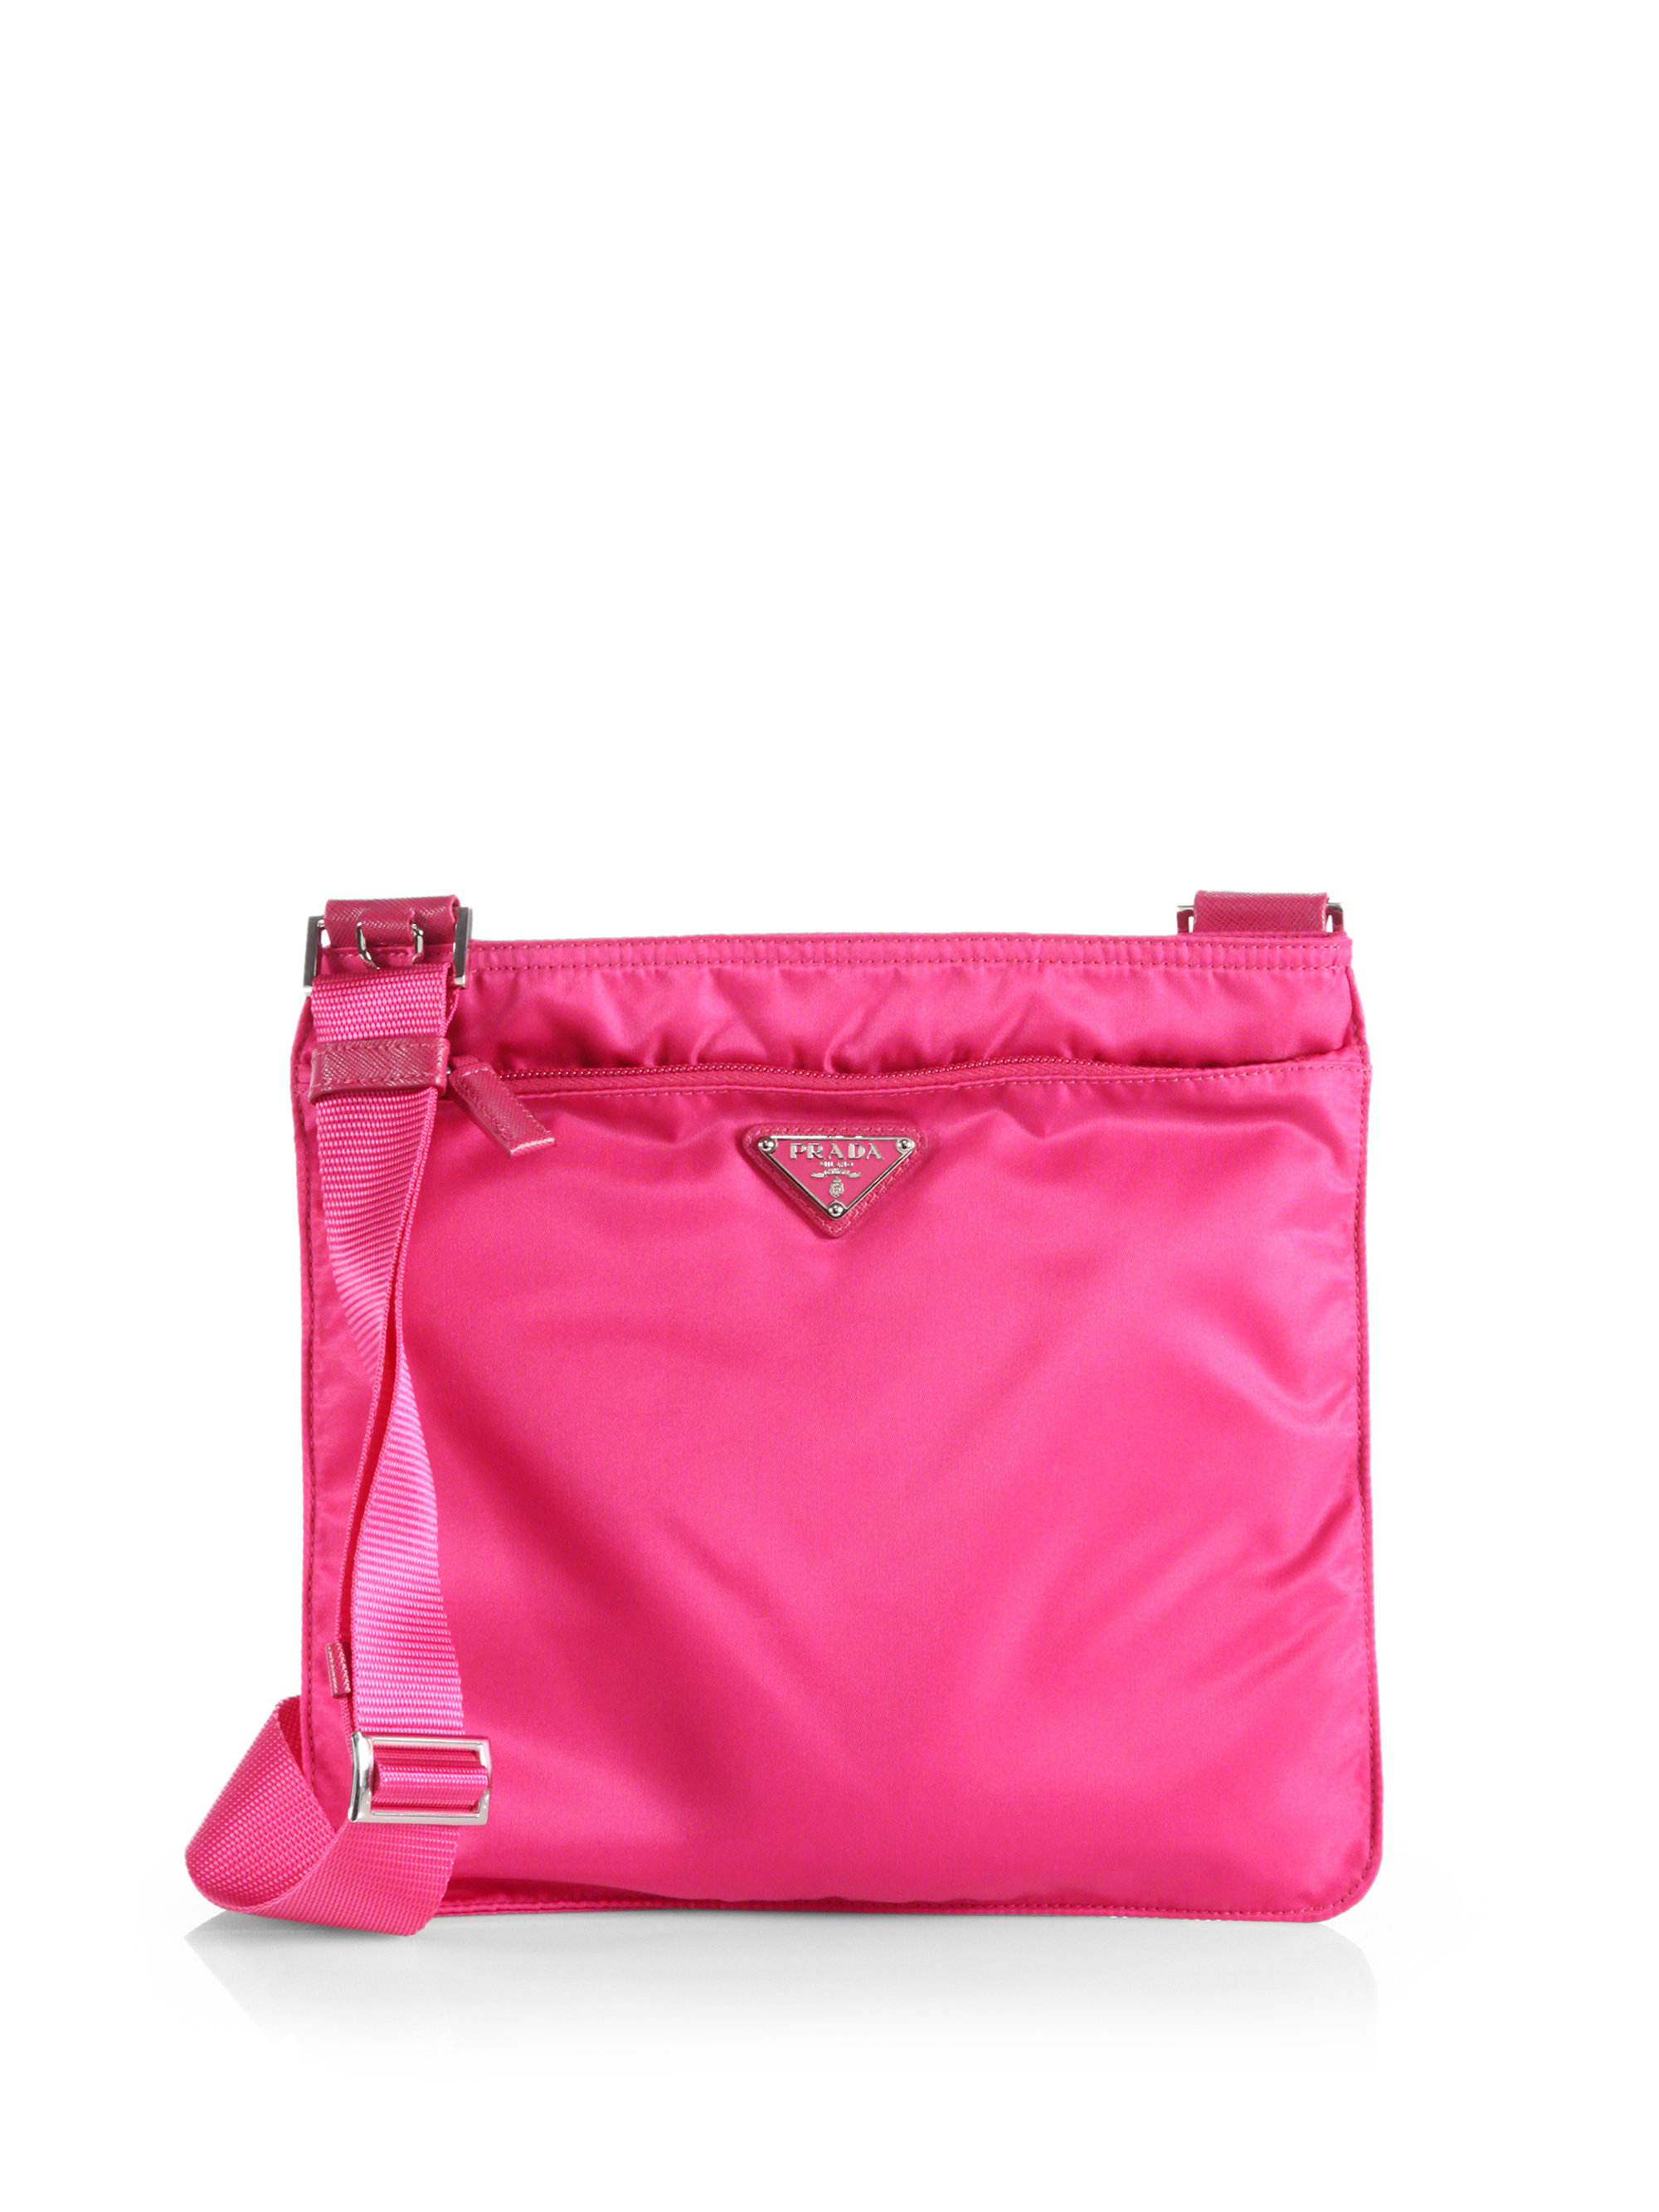 cf9a16b3b642 promo code for prada pink crossbody bag 18662 5089a